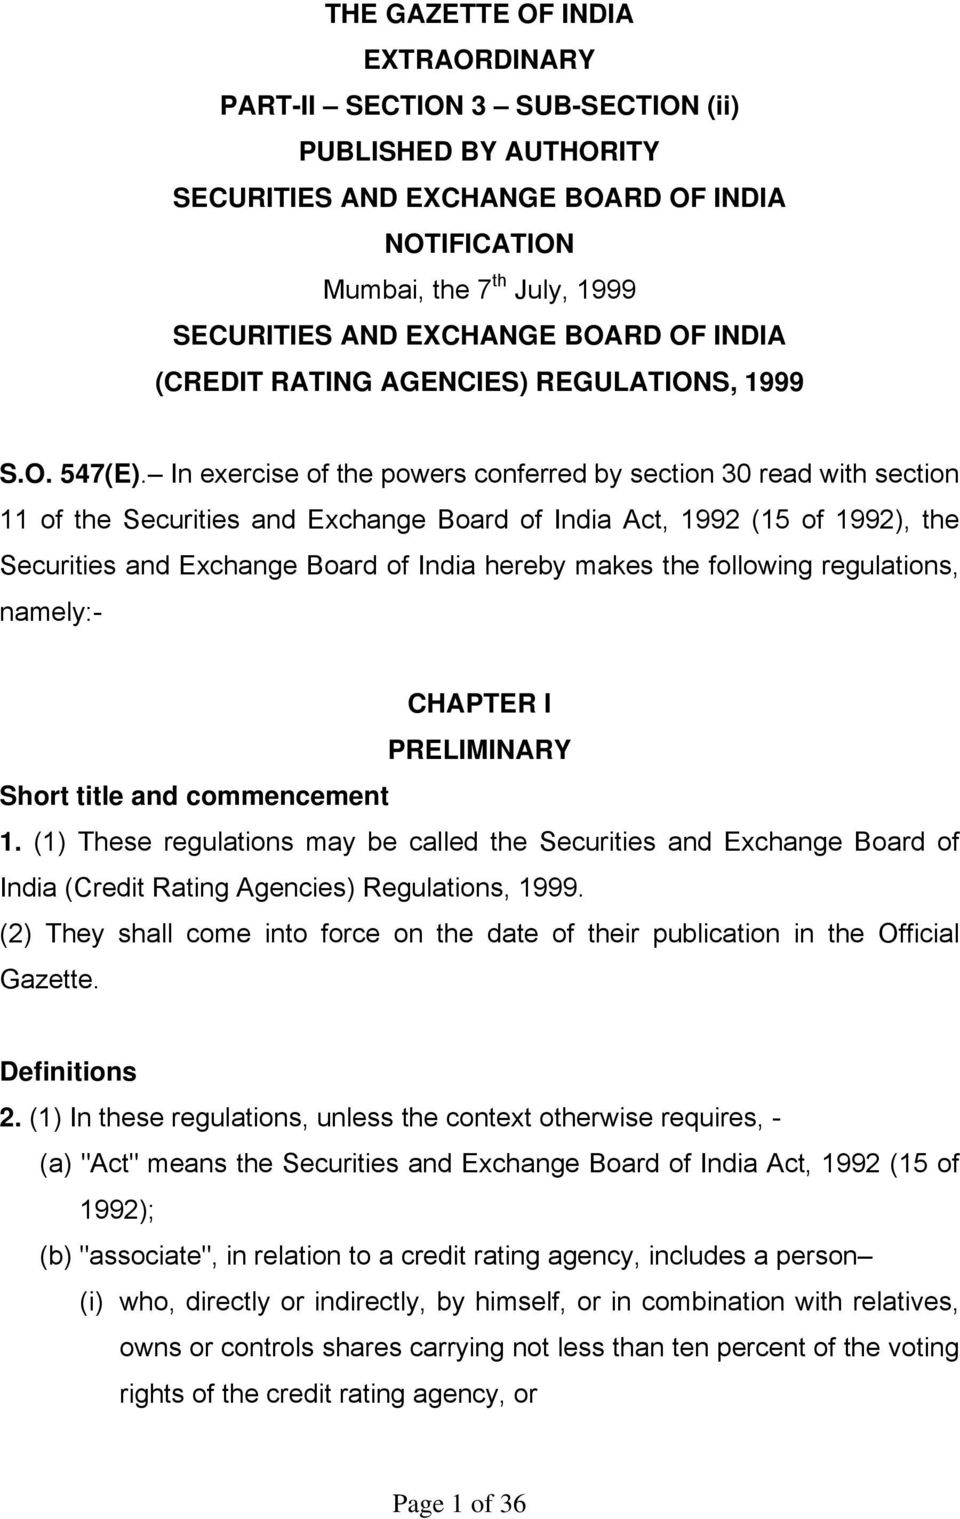 In exercise of the powers conferred by section 30 read with section 11 of the Securities and Exchange Board of India Act, 1992 (15 of 1992), the Securities and Exchange Board of India hereby makes